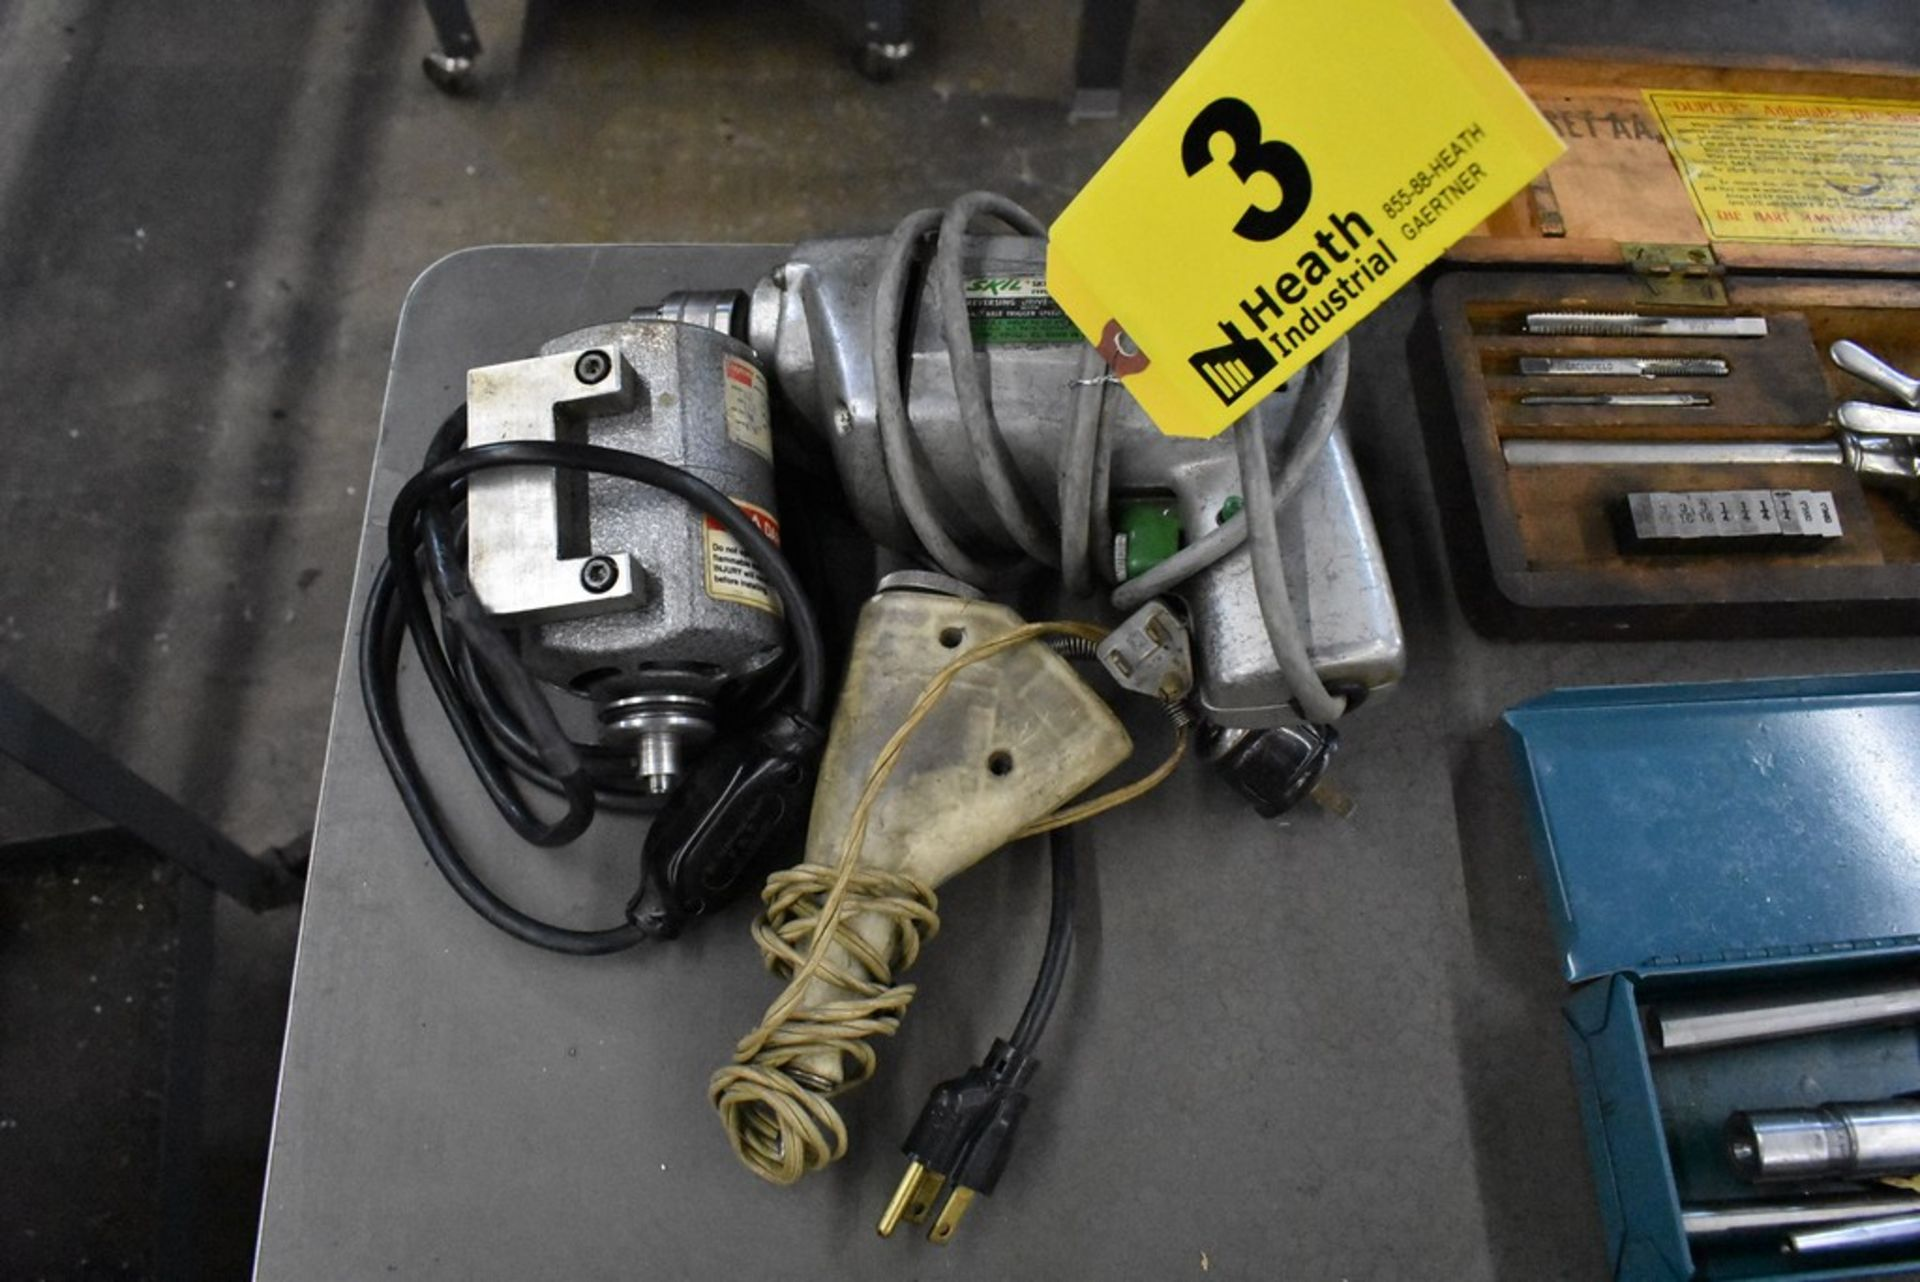 (3) ASSORTED ELECTRIC TOOLS